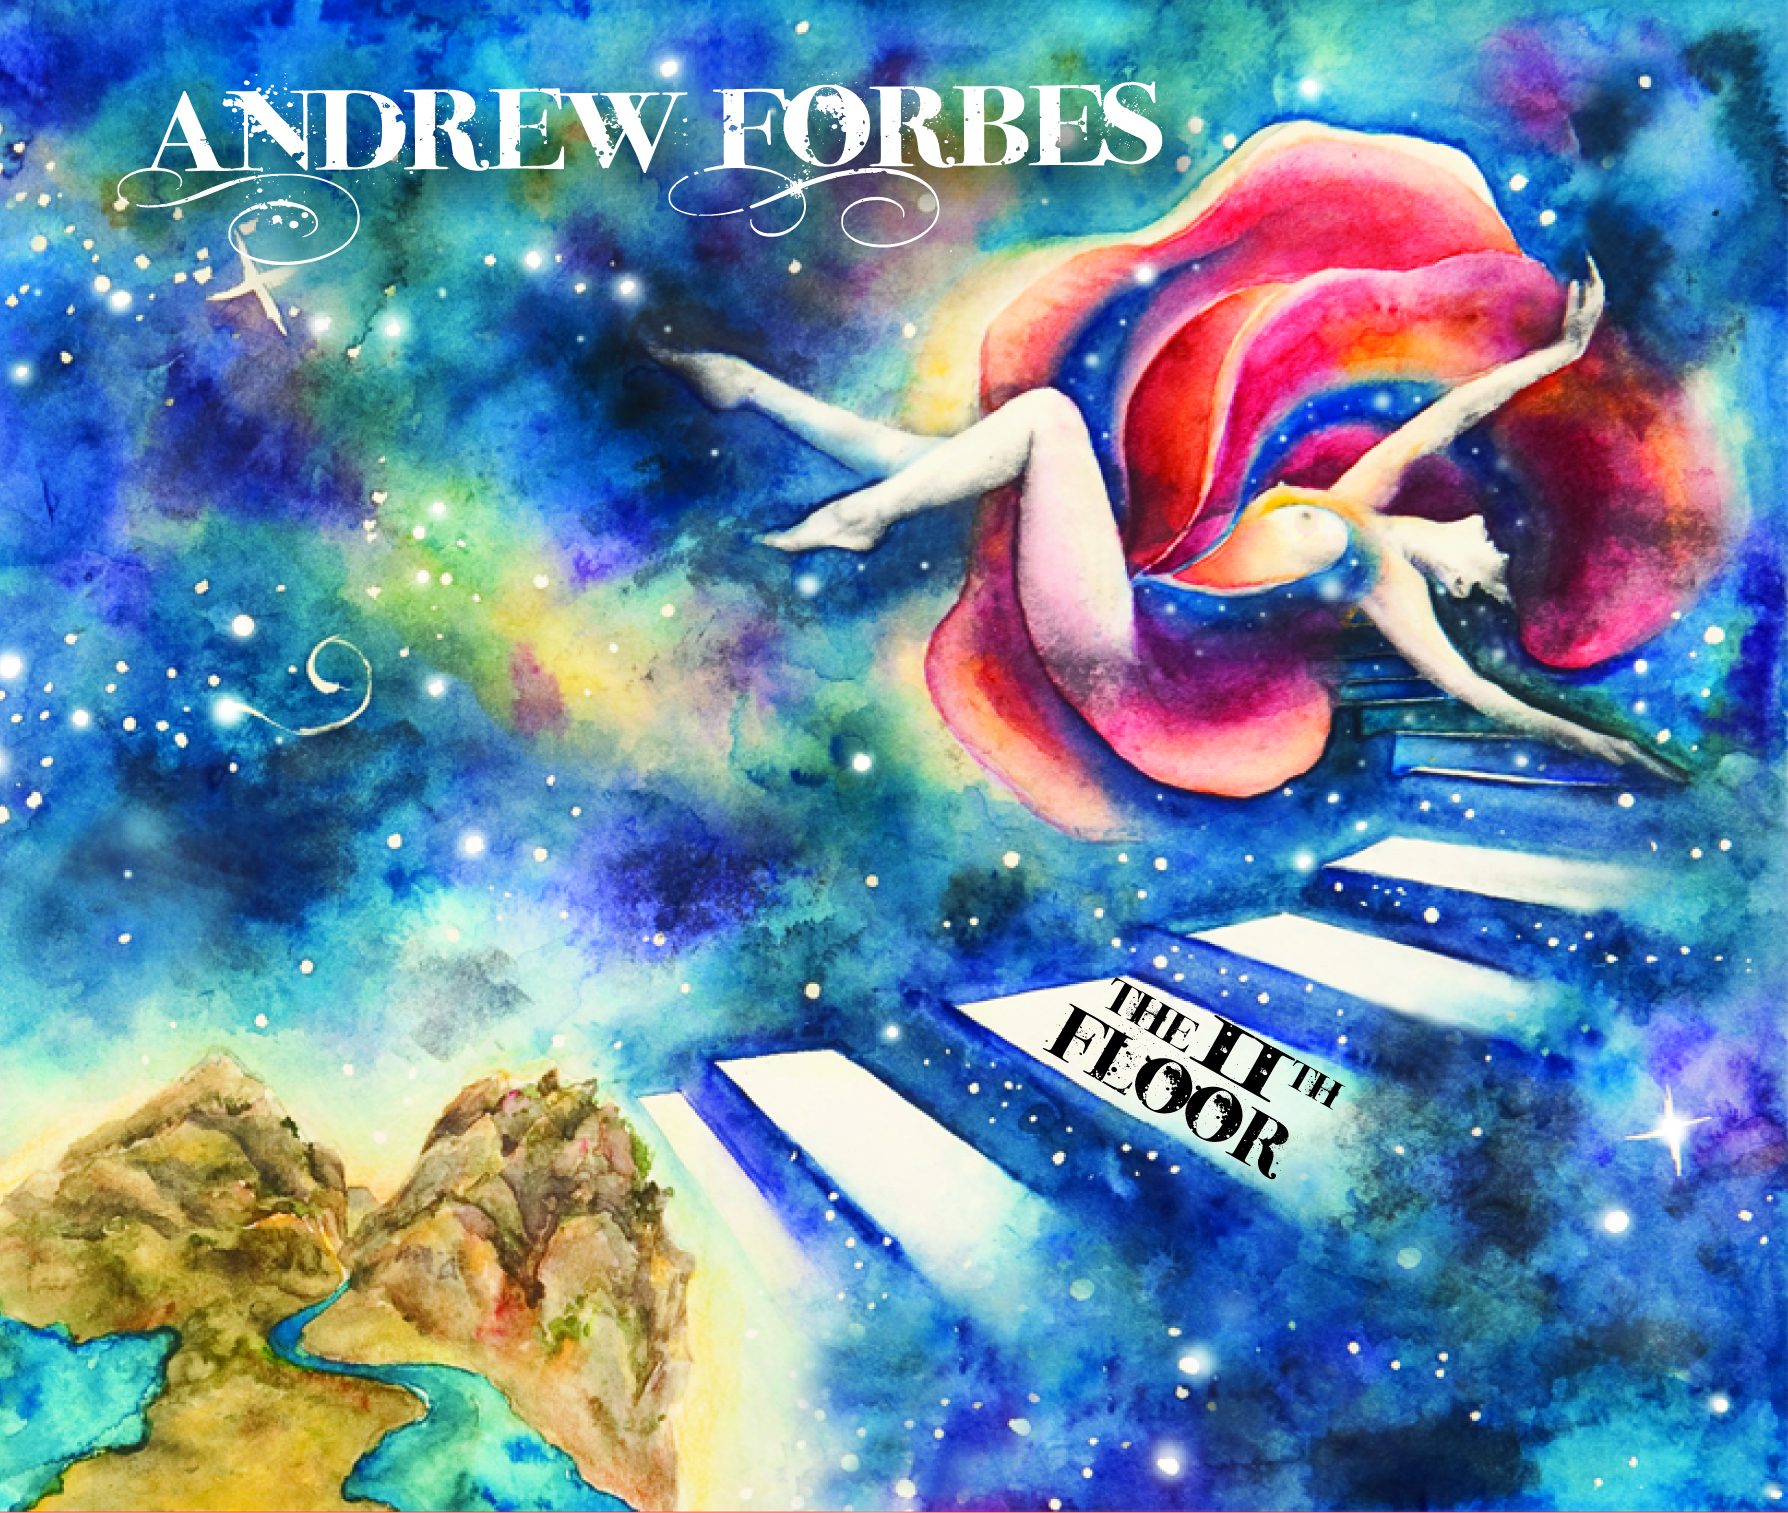 The 11th Floor - Andrew's second studio album and first official release, the 11th Floor captures the blend of Indian sounds with the highland bagpipes. Recorded in Eldorado Springs, Colorado. Andrew Forbes: bagpipes and low whistle, Sean Burhoe: tabla and framedrum, Scott Parker Mast: percussion, Johannas Rath: guitalimba, Aaron Davis: sarod, Dave Cipriani: vocals and guitar. Produced by Andy McEwen and Andrew Forbes.